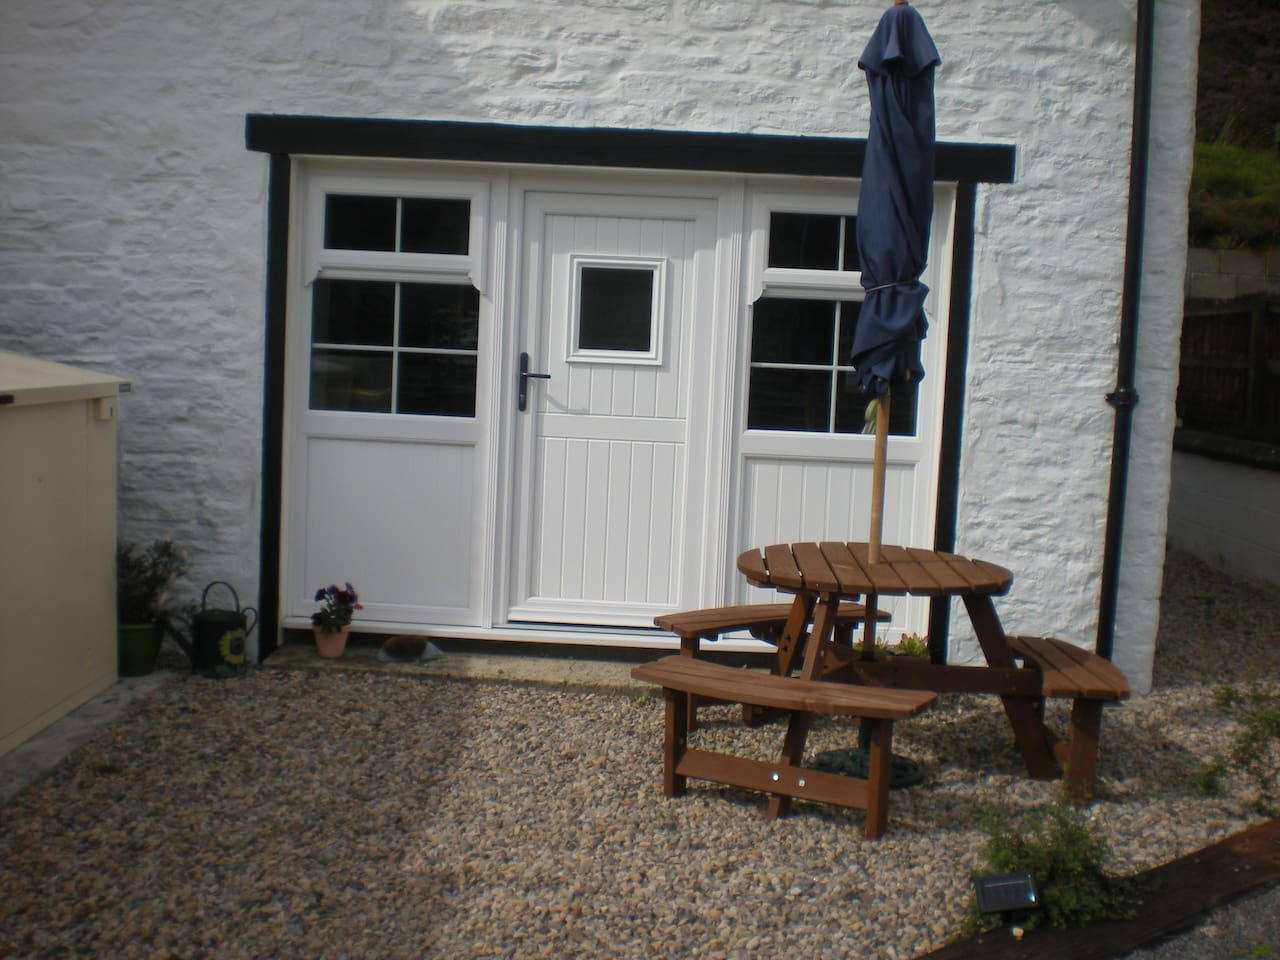 Bunkhouse with outside sitting area.